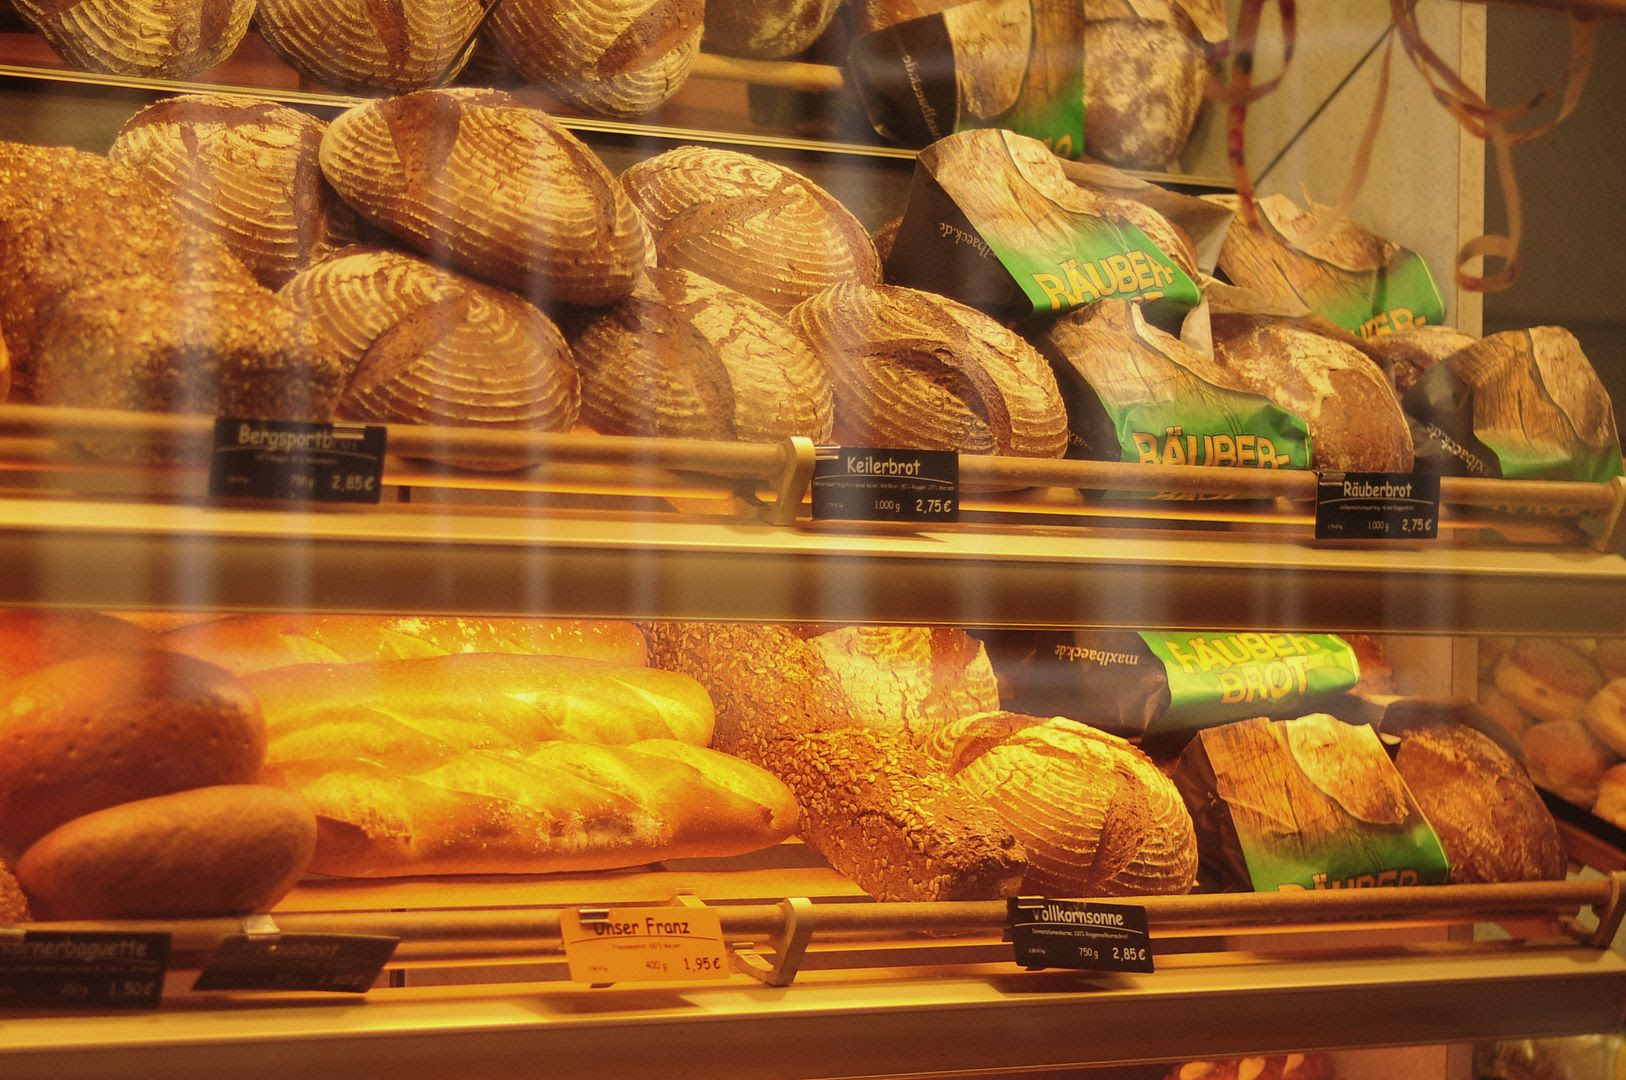 08.02.13, On our way to and from town, we pass this amazing bakery which is my favourite..